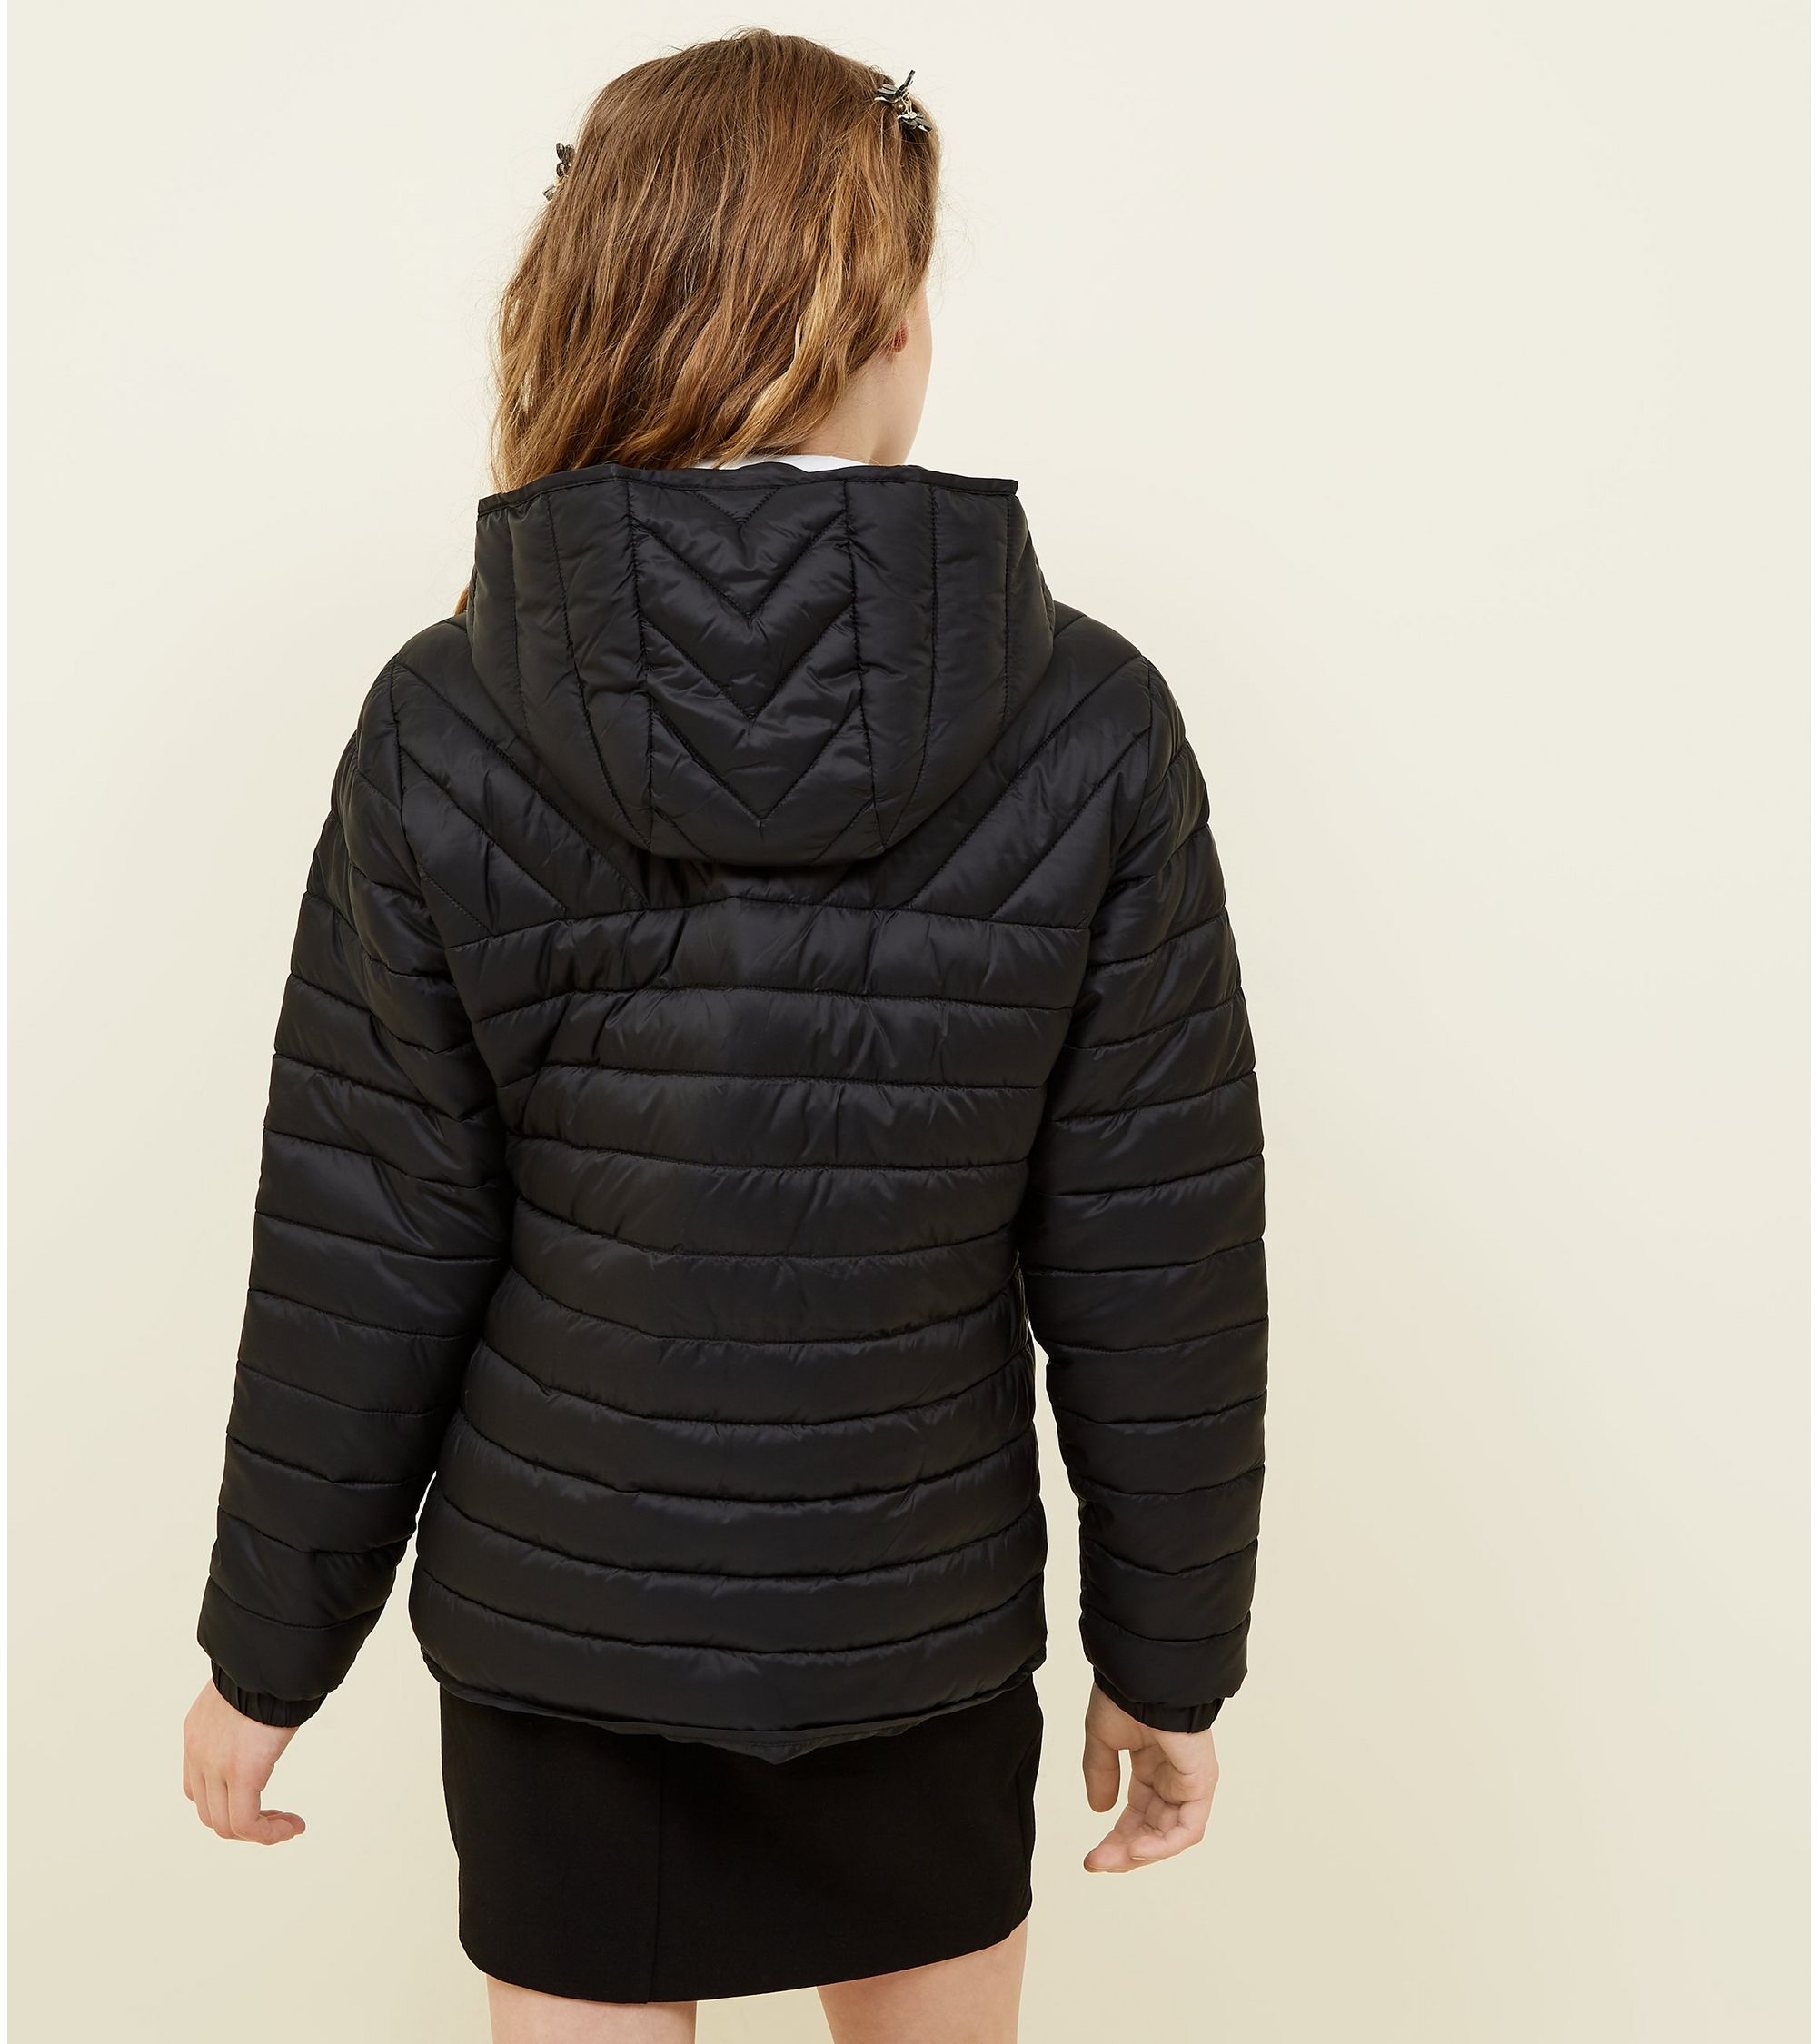 c36f6291c New Look Girls Black Lightweight Hooded Puffer Jacket at £14.99 ...